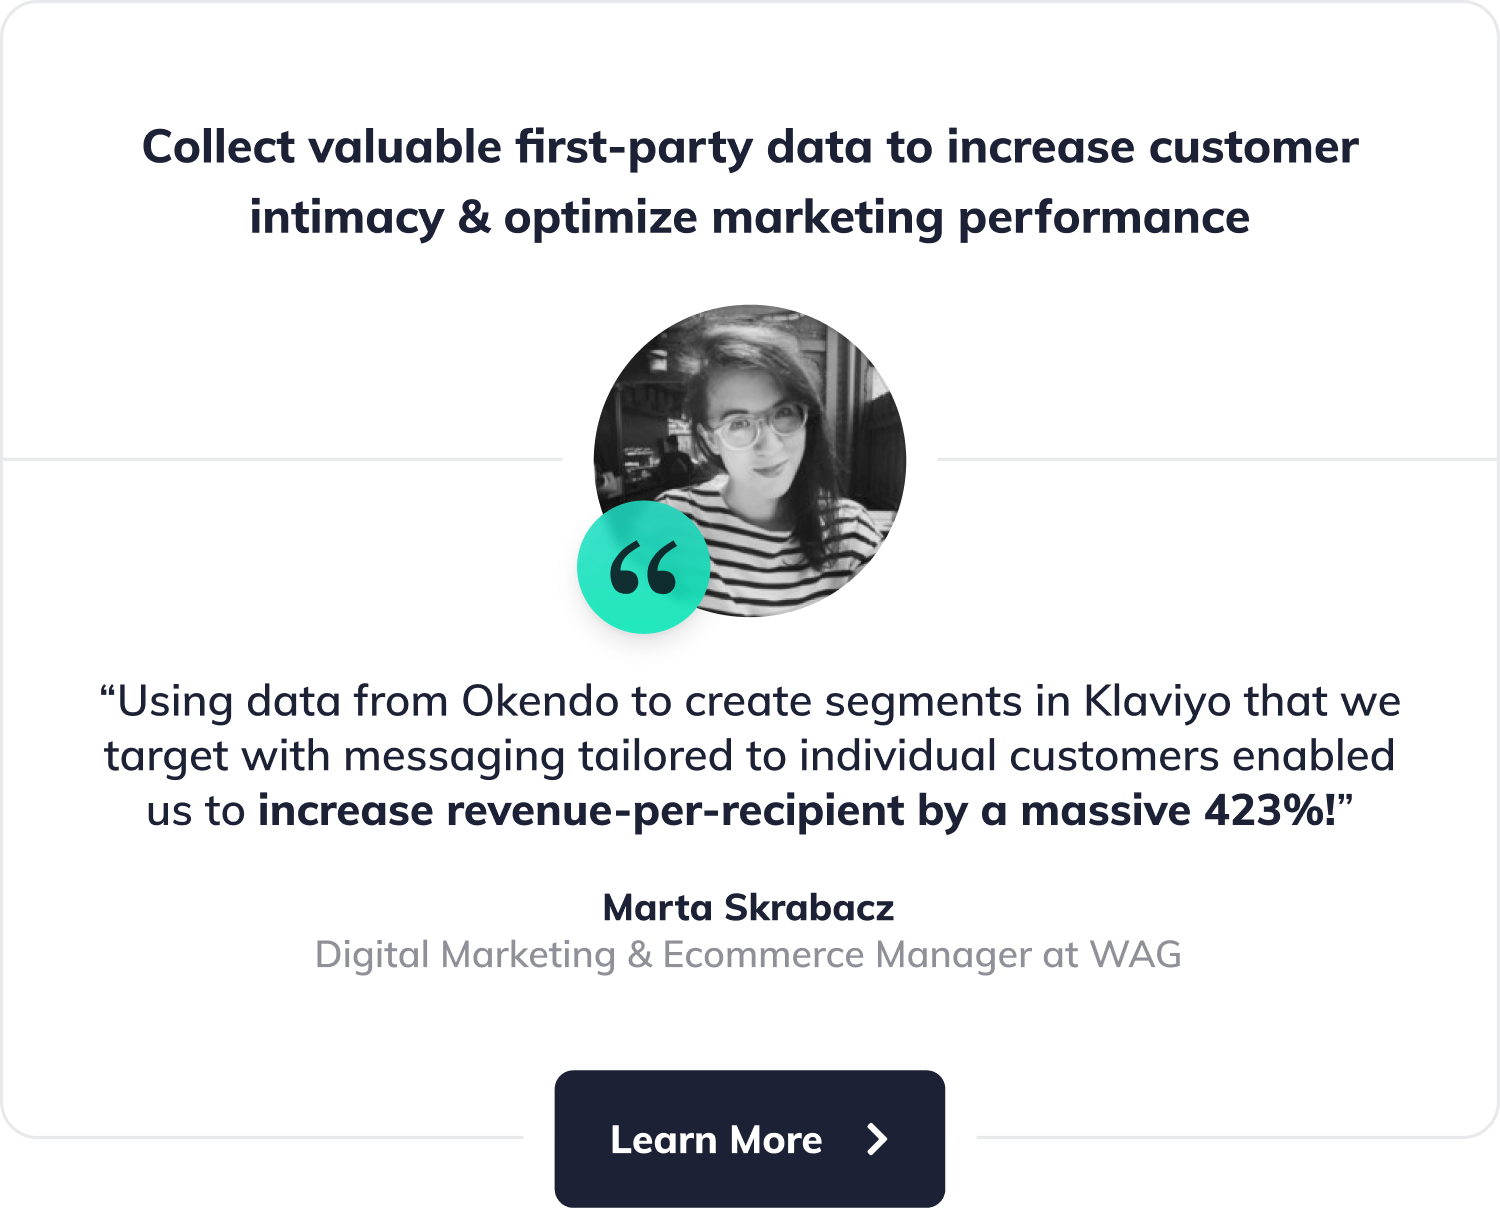 "Collect valuable first-party data to increase customer intimacy and optimize marketing performance. ""Using data from Okendo to create segments in Klaviyo that we target with messaging tailored to individual customers enabled us to increase revenue-per-recipient by a massive 423%!"", says Marta Skrabacz, Digital Marketing & Ecommerce Manager at WAG. Button with label"